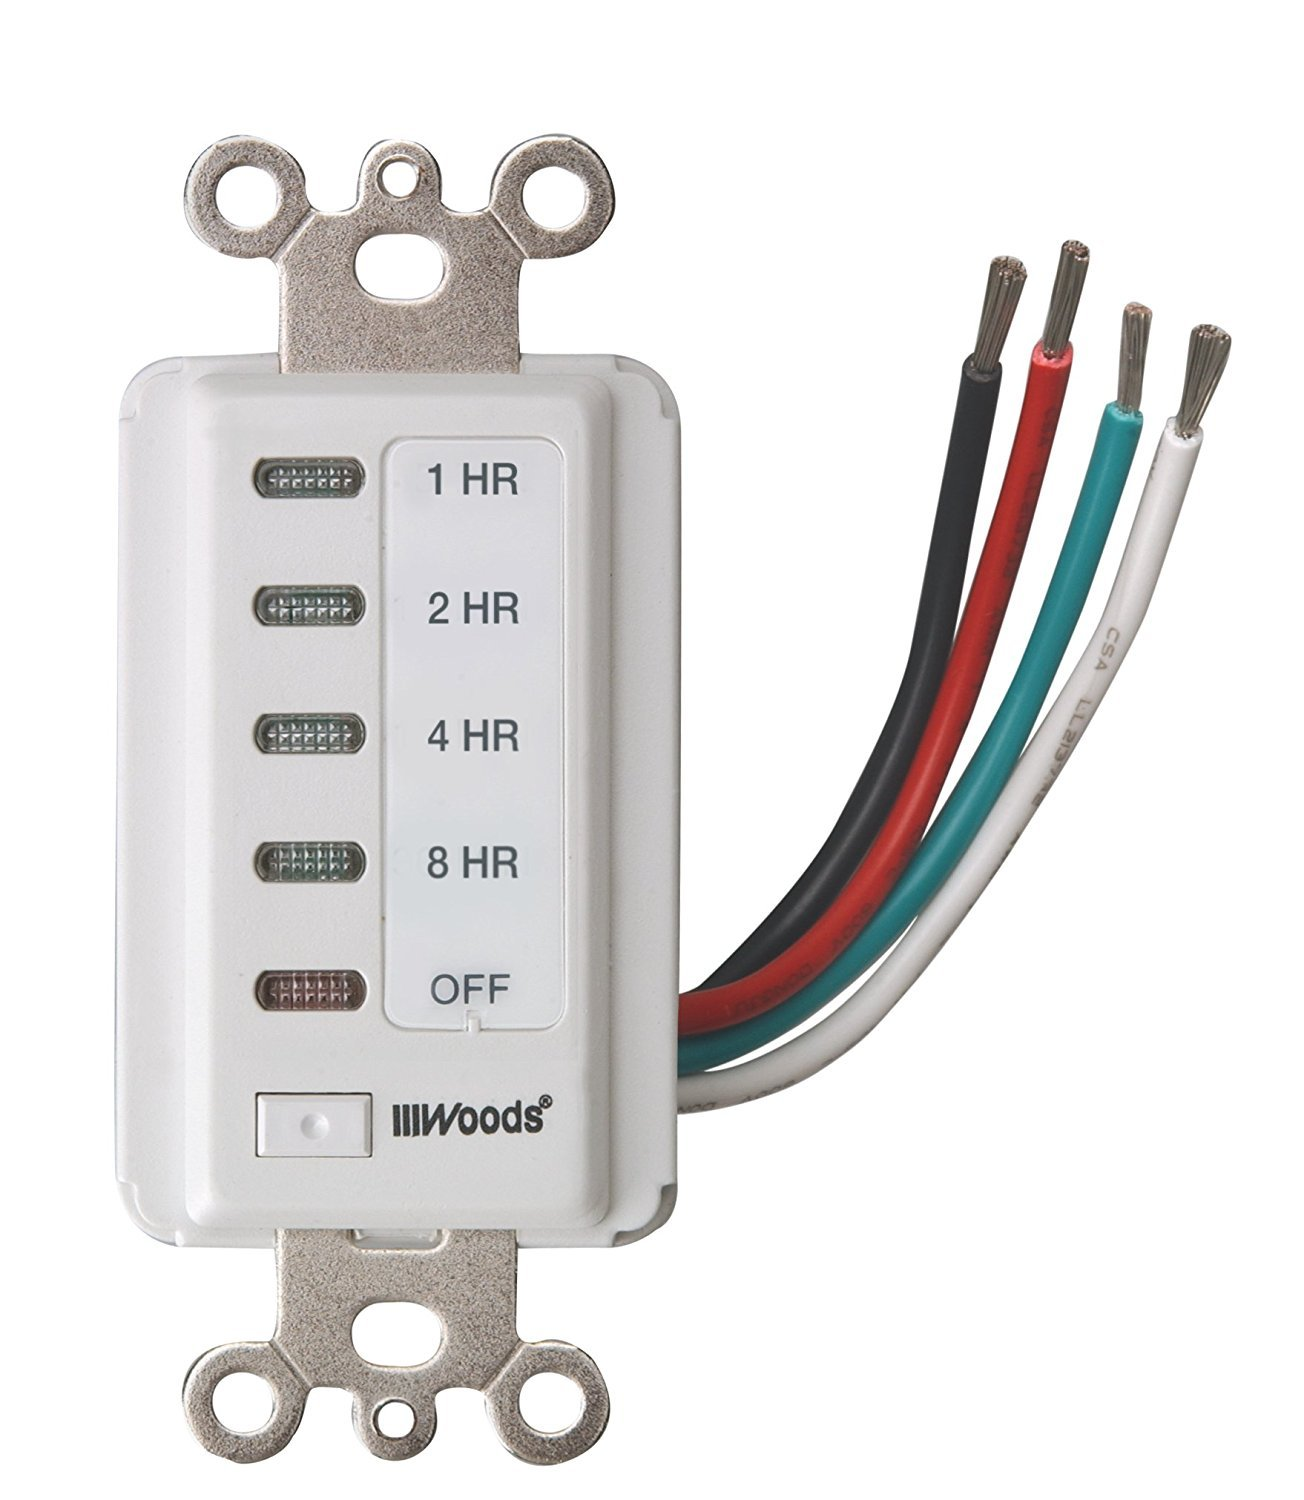 Woods 59013 In- In-Wall Timer, 120 V, 15 A, 2, 4, 8, 12 Hr Off Off, on